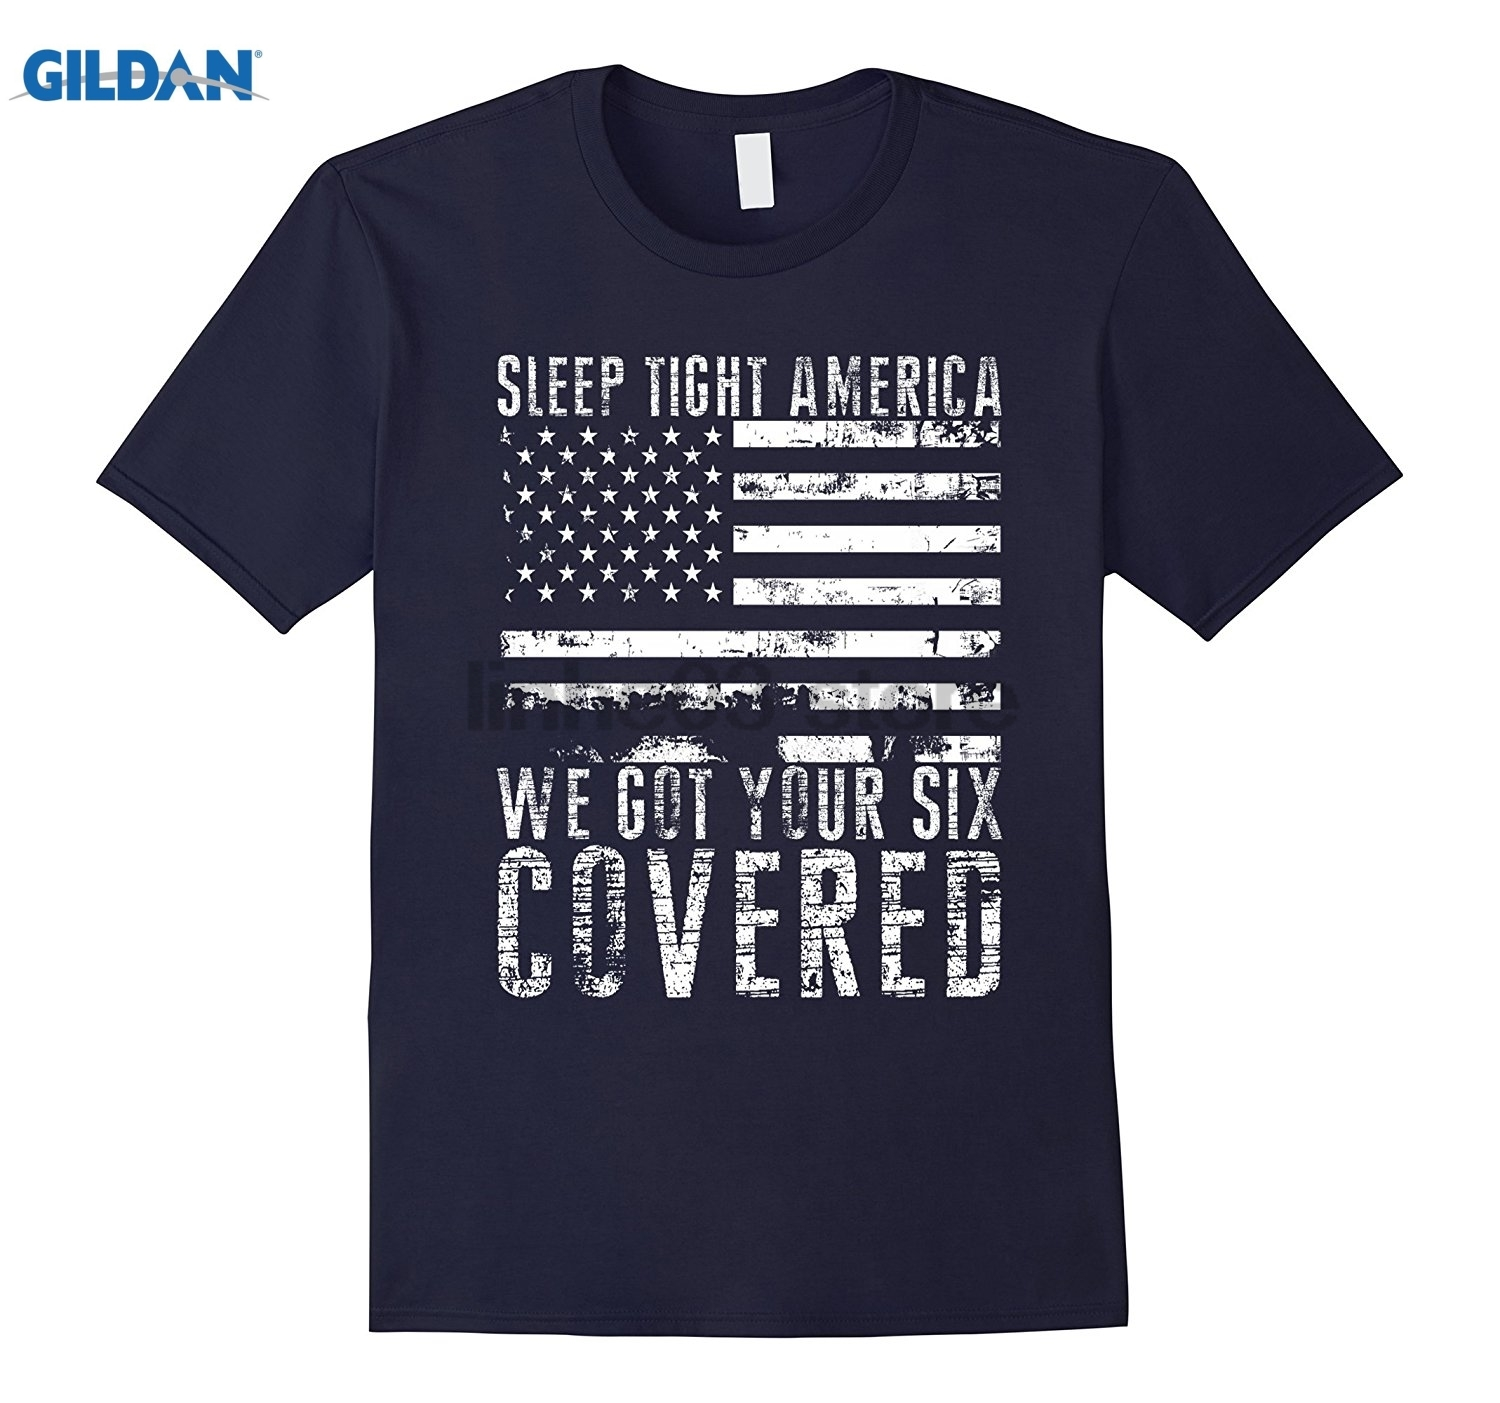 GILDAN Sleep Tight America We Got Your SIX Cover T-shirt Womens T-shirt Dress female T-s ...